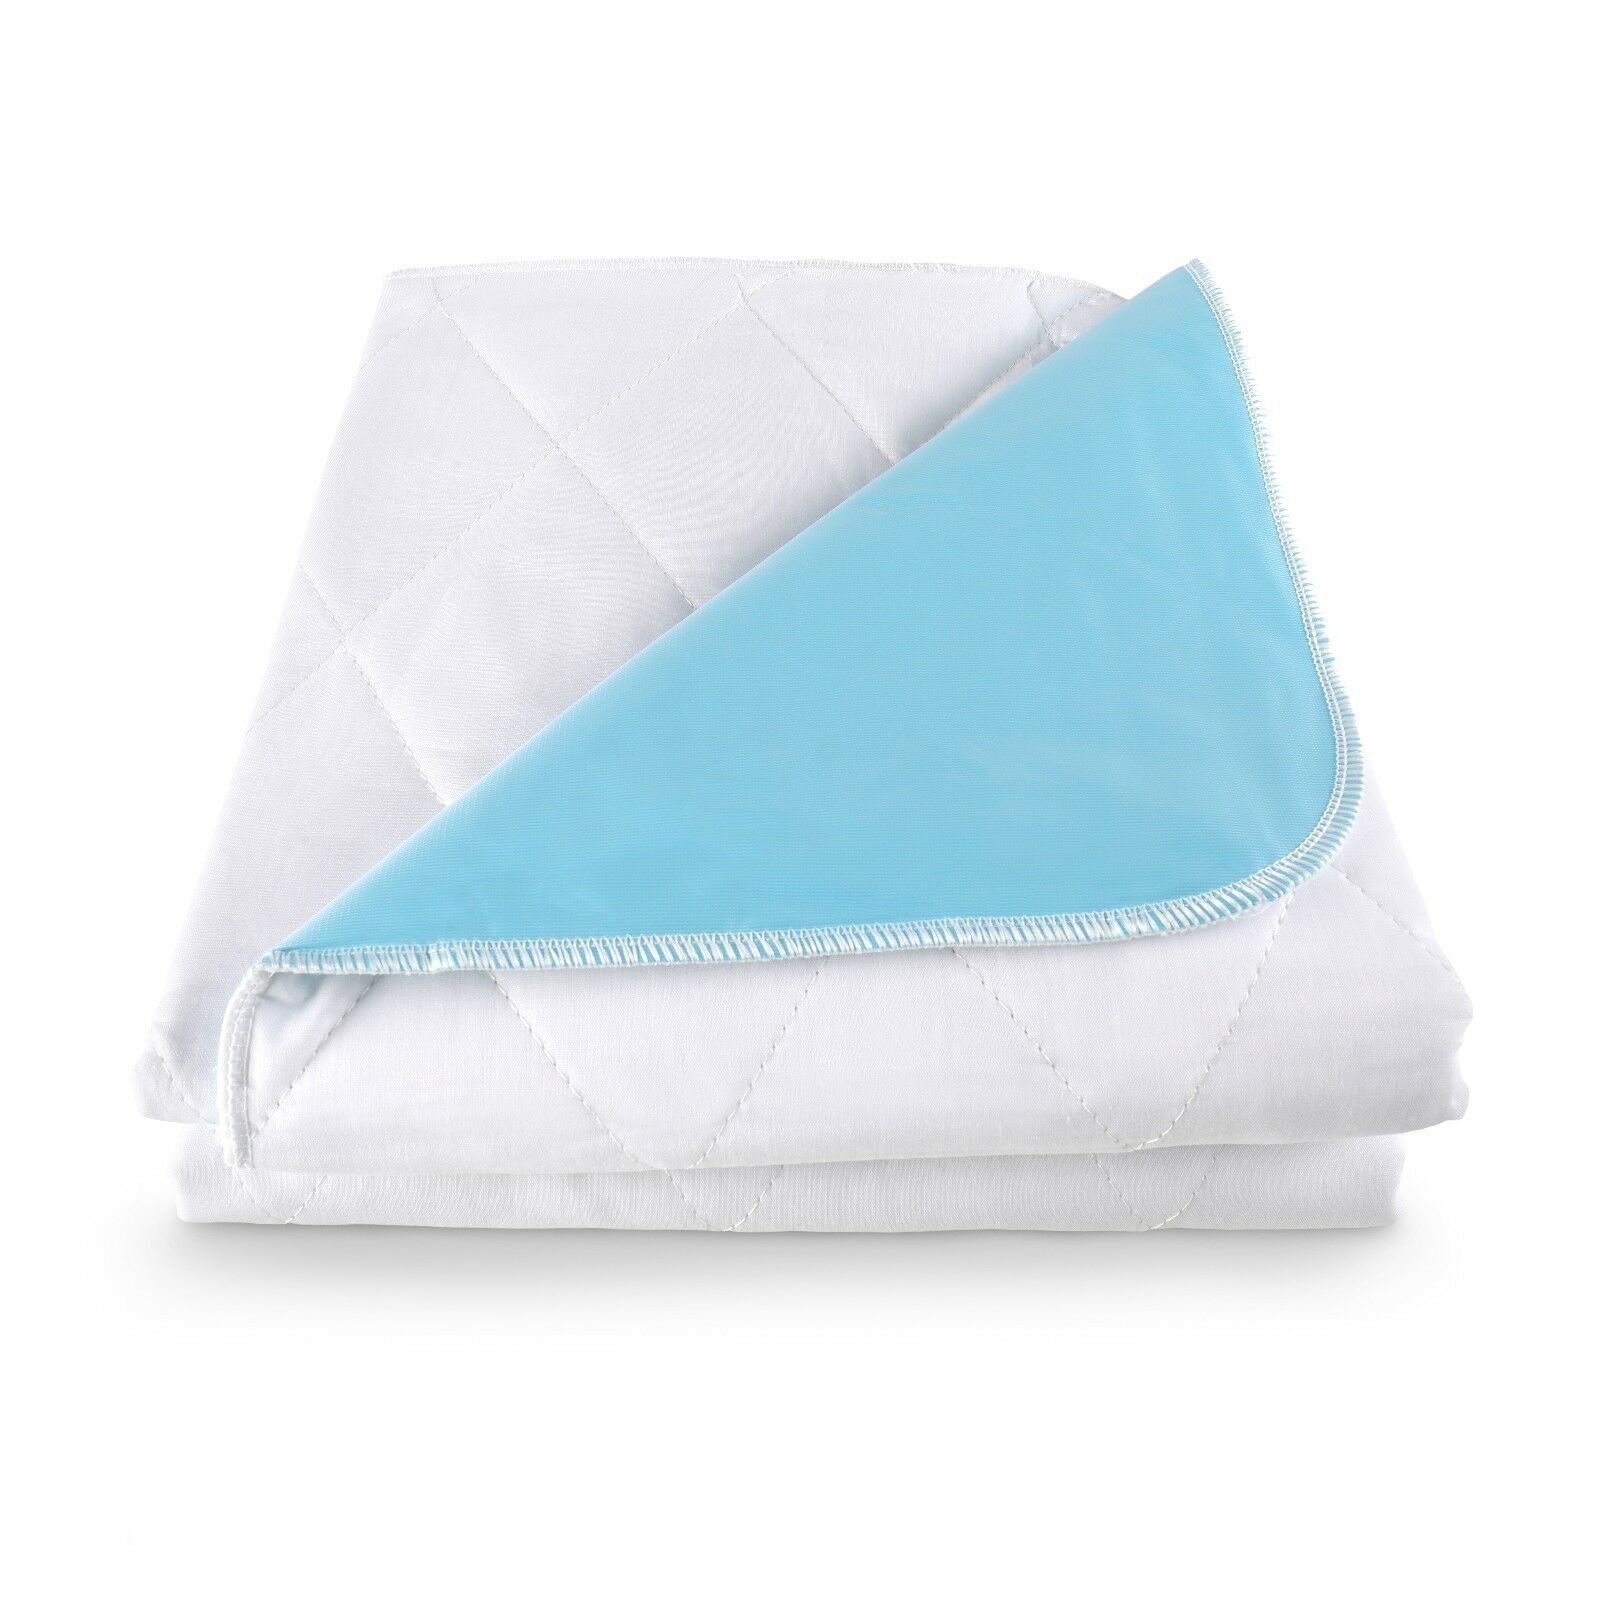 Reusable Waterproof Bed Pad Sheet Protector - 34 X 52 Inches Underpad - $12.95